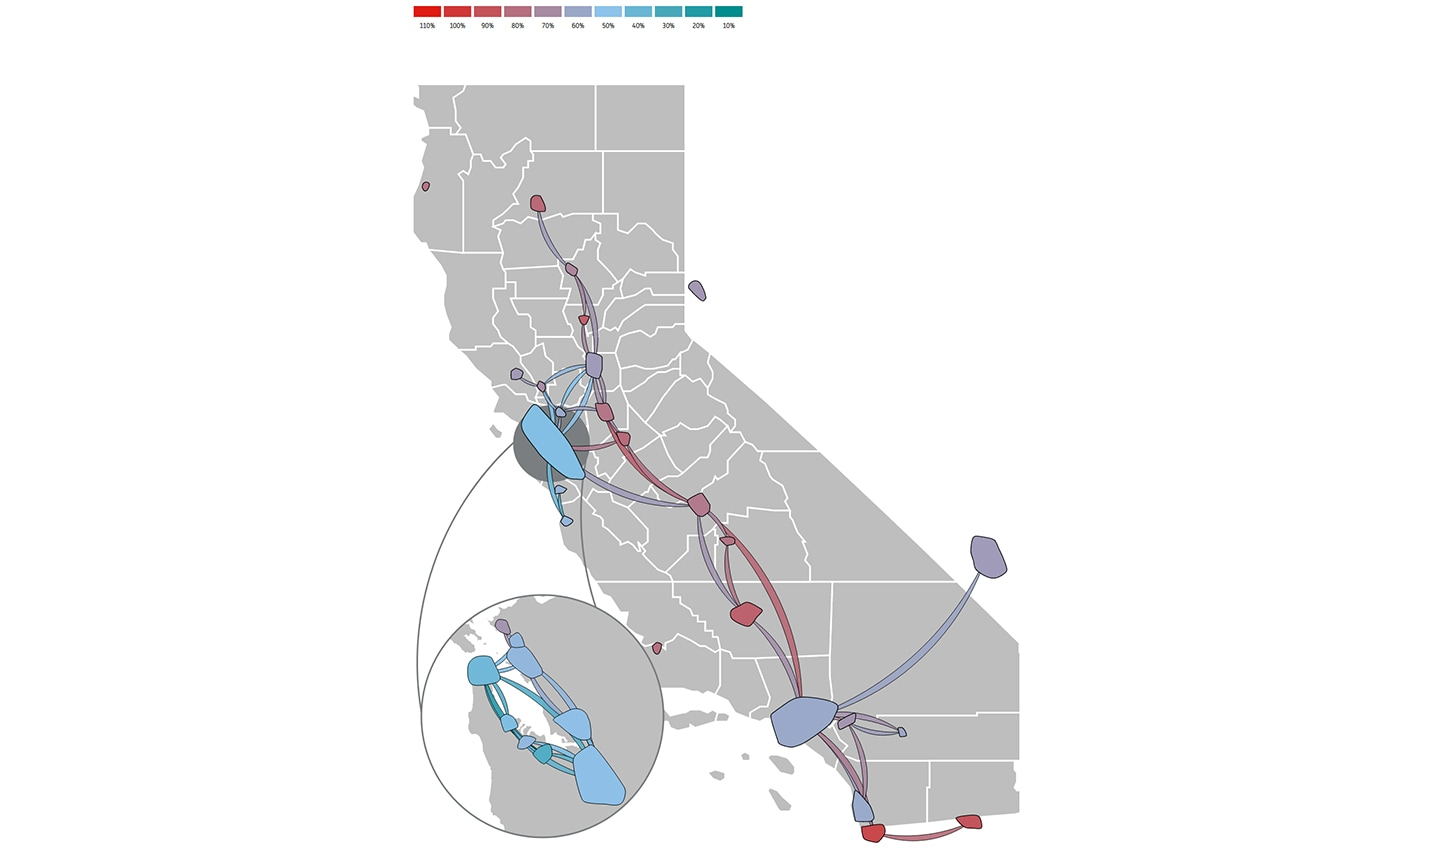 Remaining mobility in California between March 14, 2020 and March 20, 2020 as a percentage of January traffic.